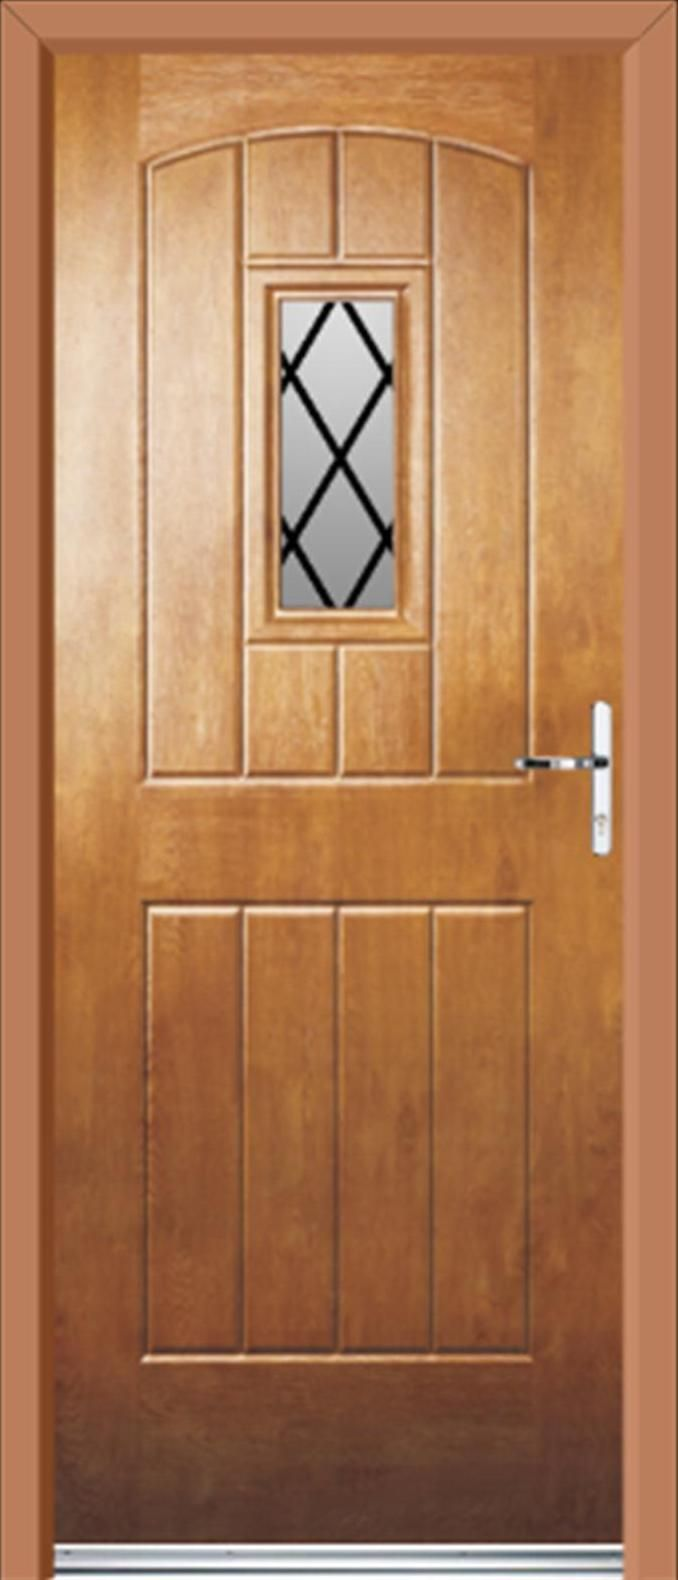 Cottage Style Exterior Doors | UPVC Doors English Cottage Diamond Lead  Light Oak | UPVC Front